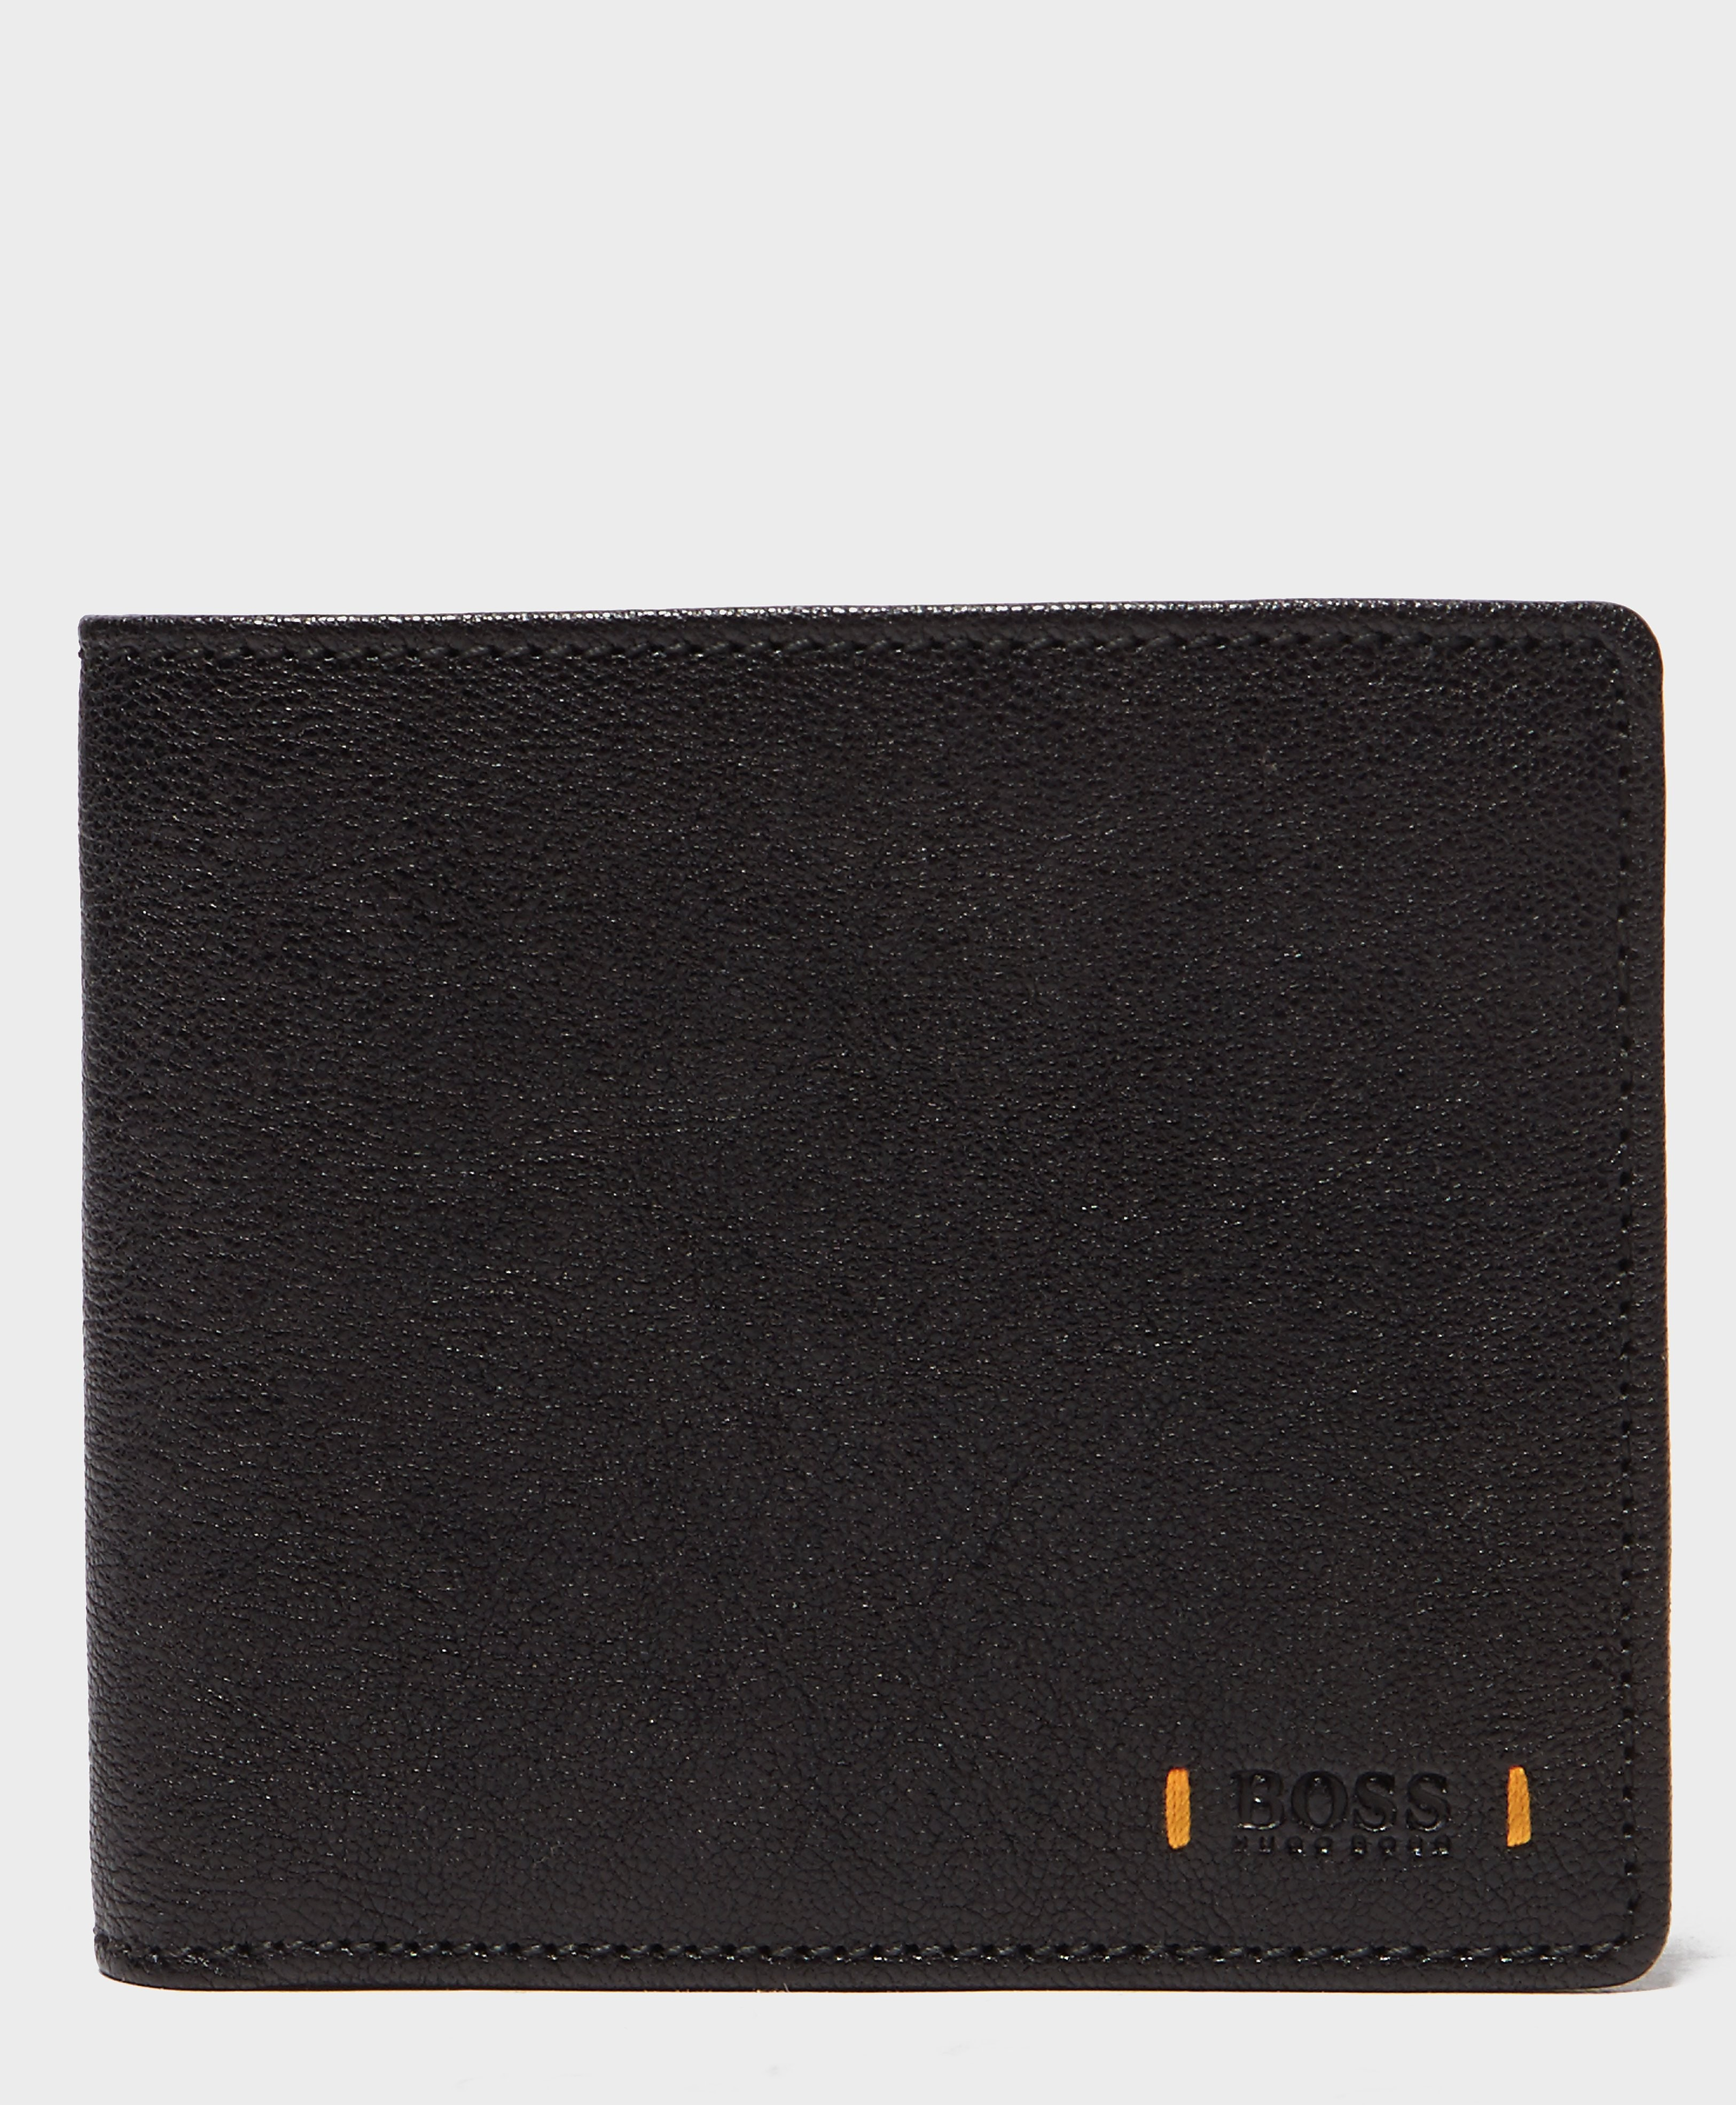 BOSS Orange Leather Bill Wallet